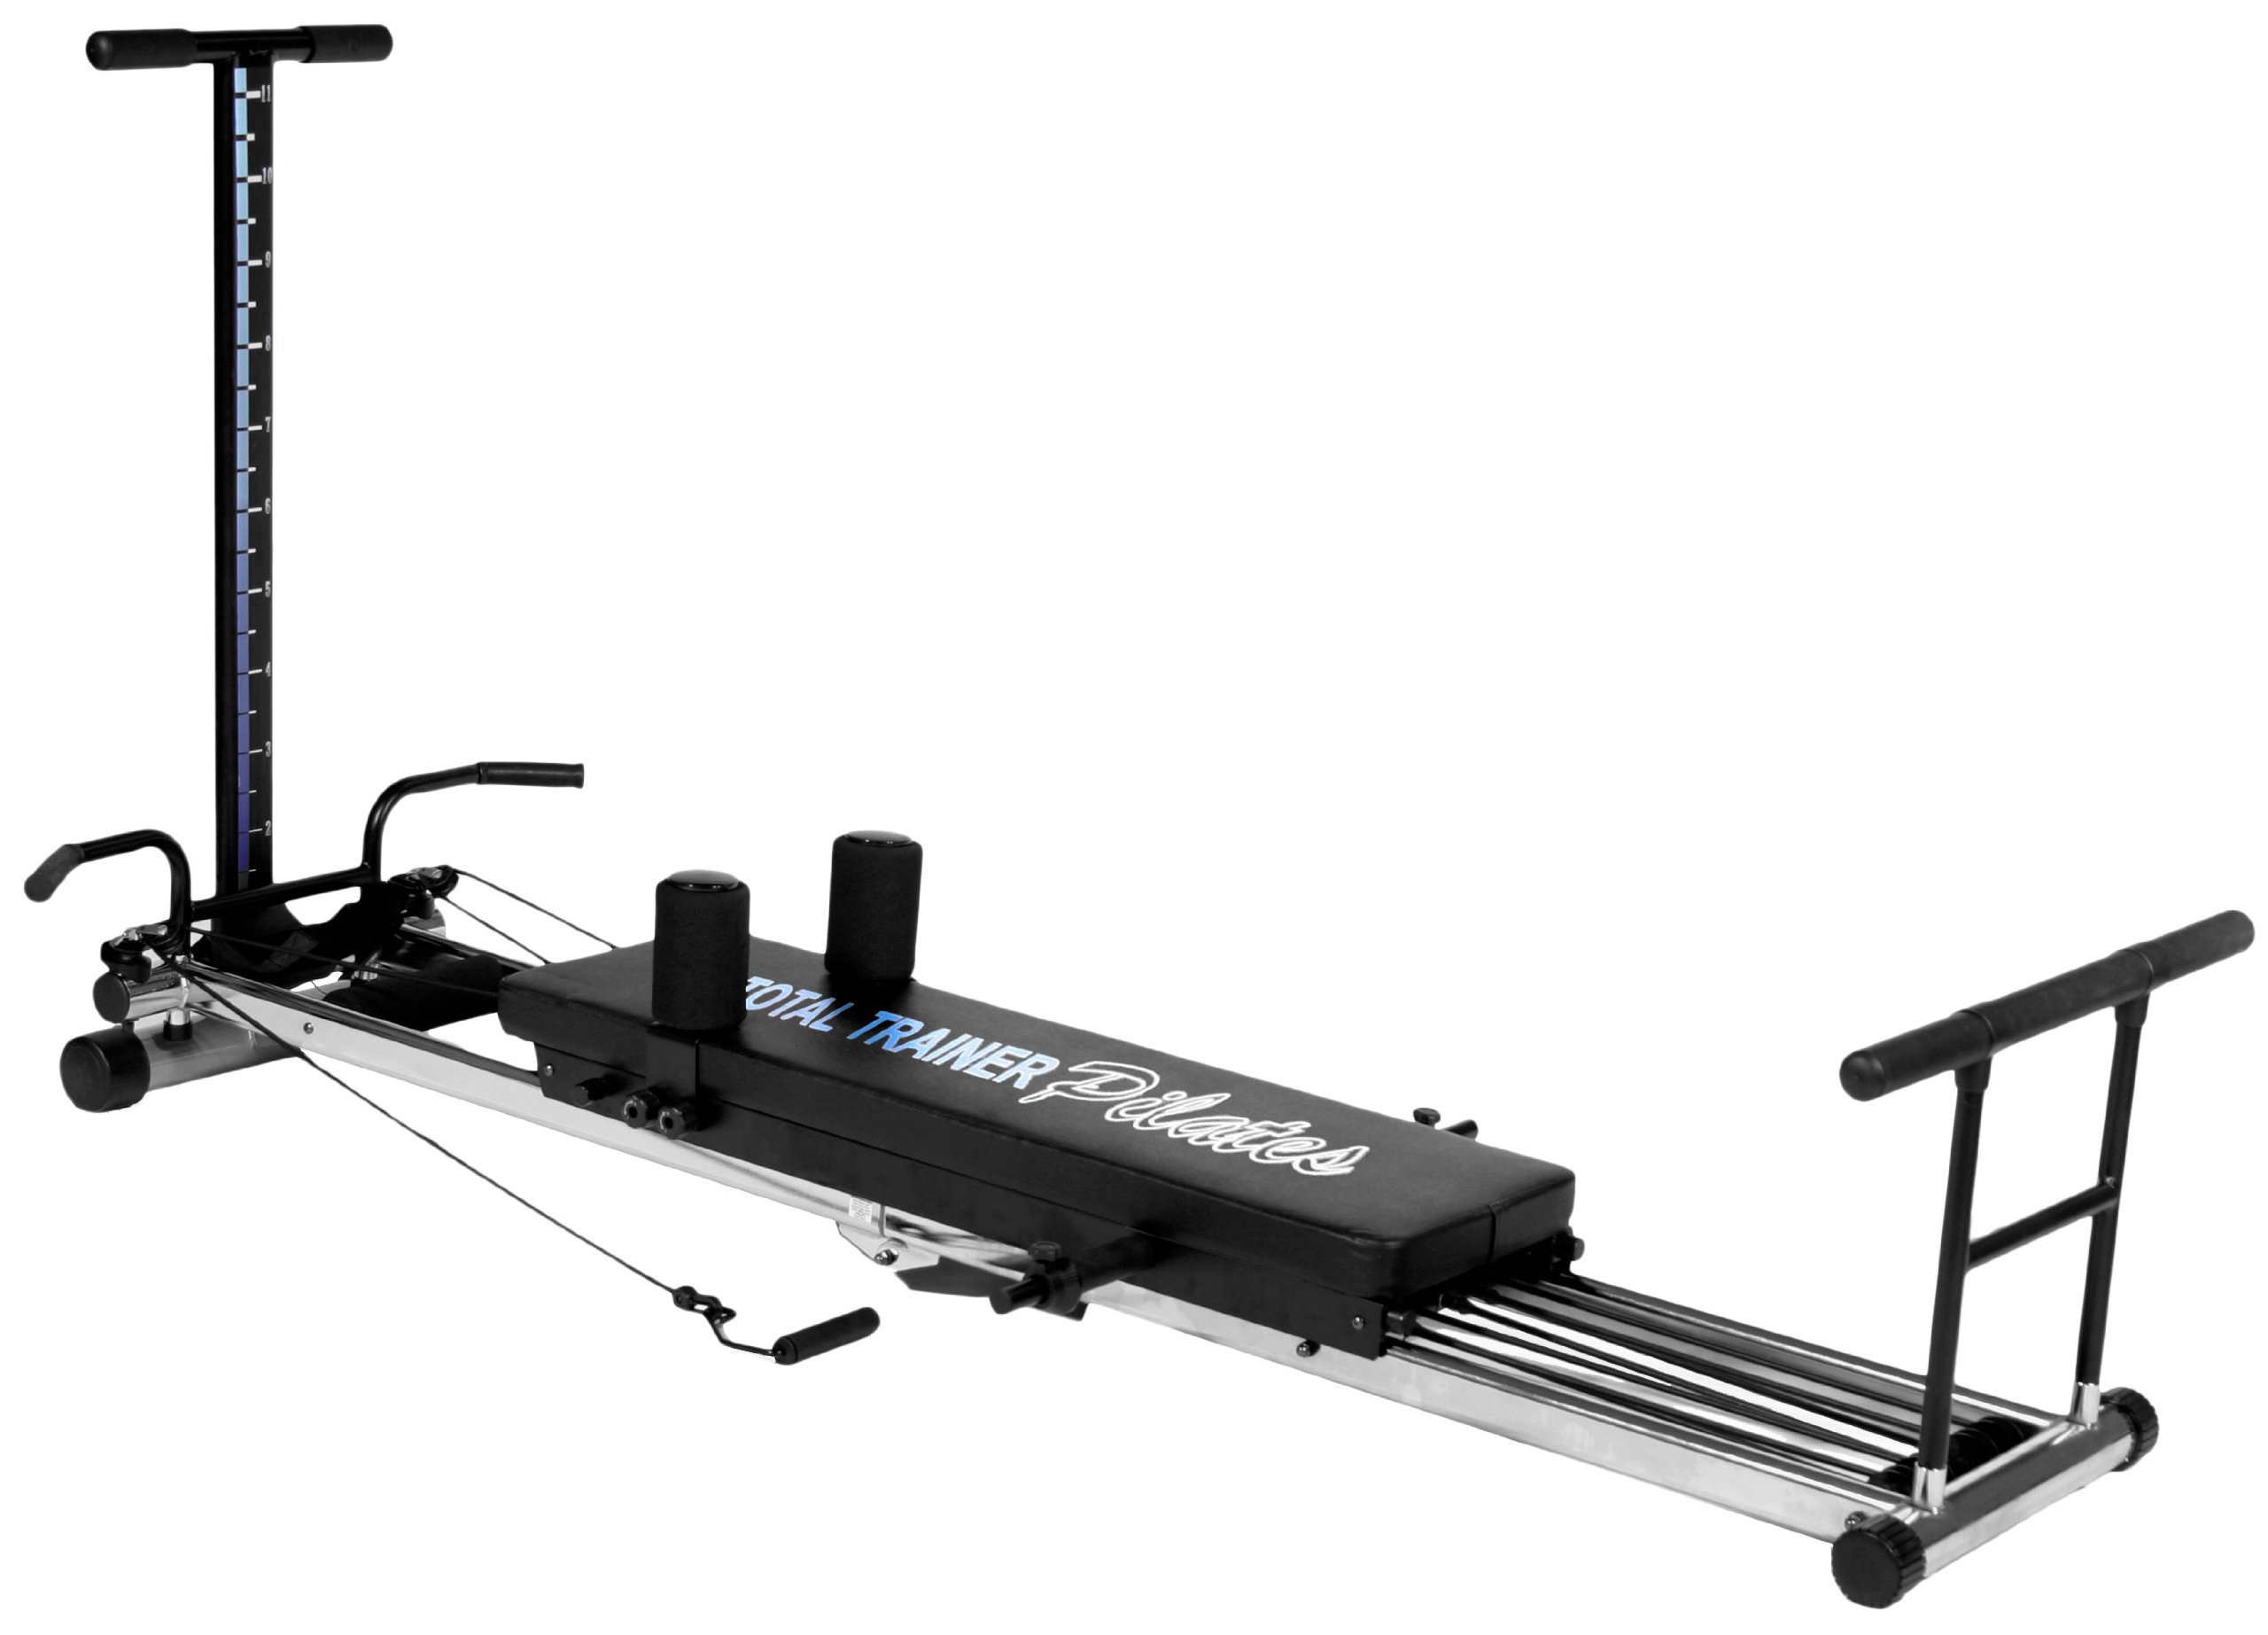 Bayou Fitness Total Trainer Pilates Pro Reformer Home Gym PilatesPro by Bayou Fitness